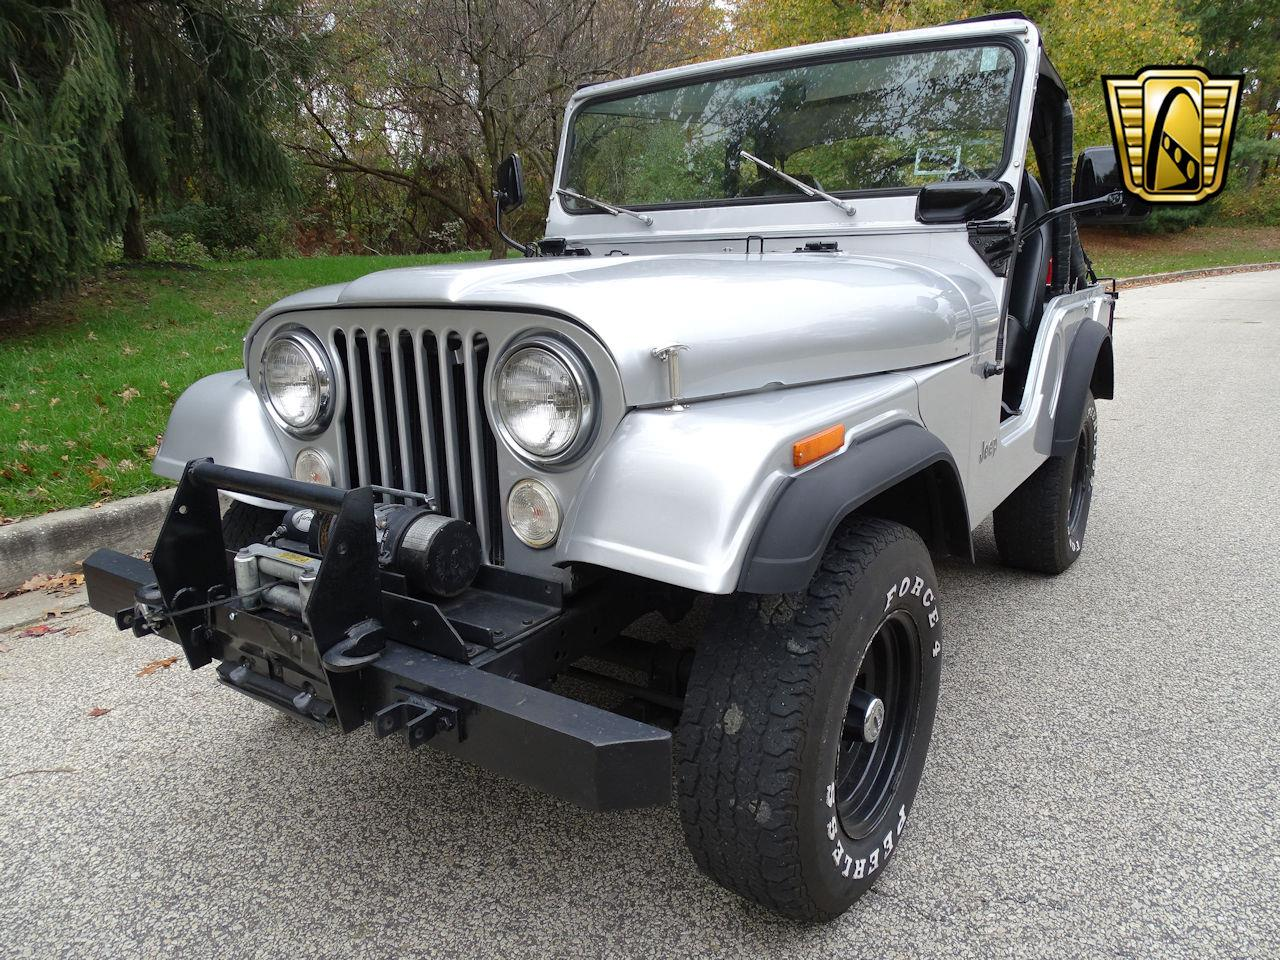 Large Picture of '75 Jeep CJ5 located in West Deptford New Jersey - $14,995.00 Offered by Gateway Classic Cars - Philadelphia - MDQG